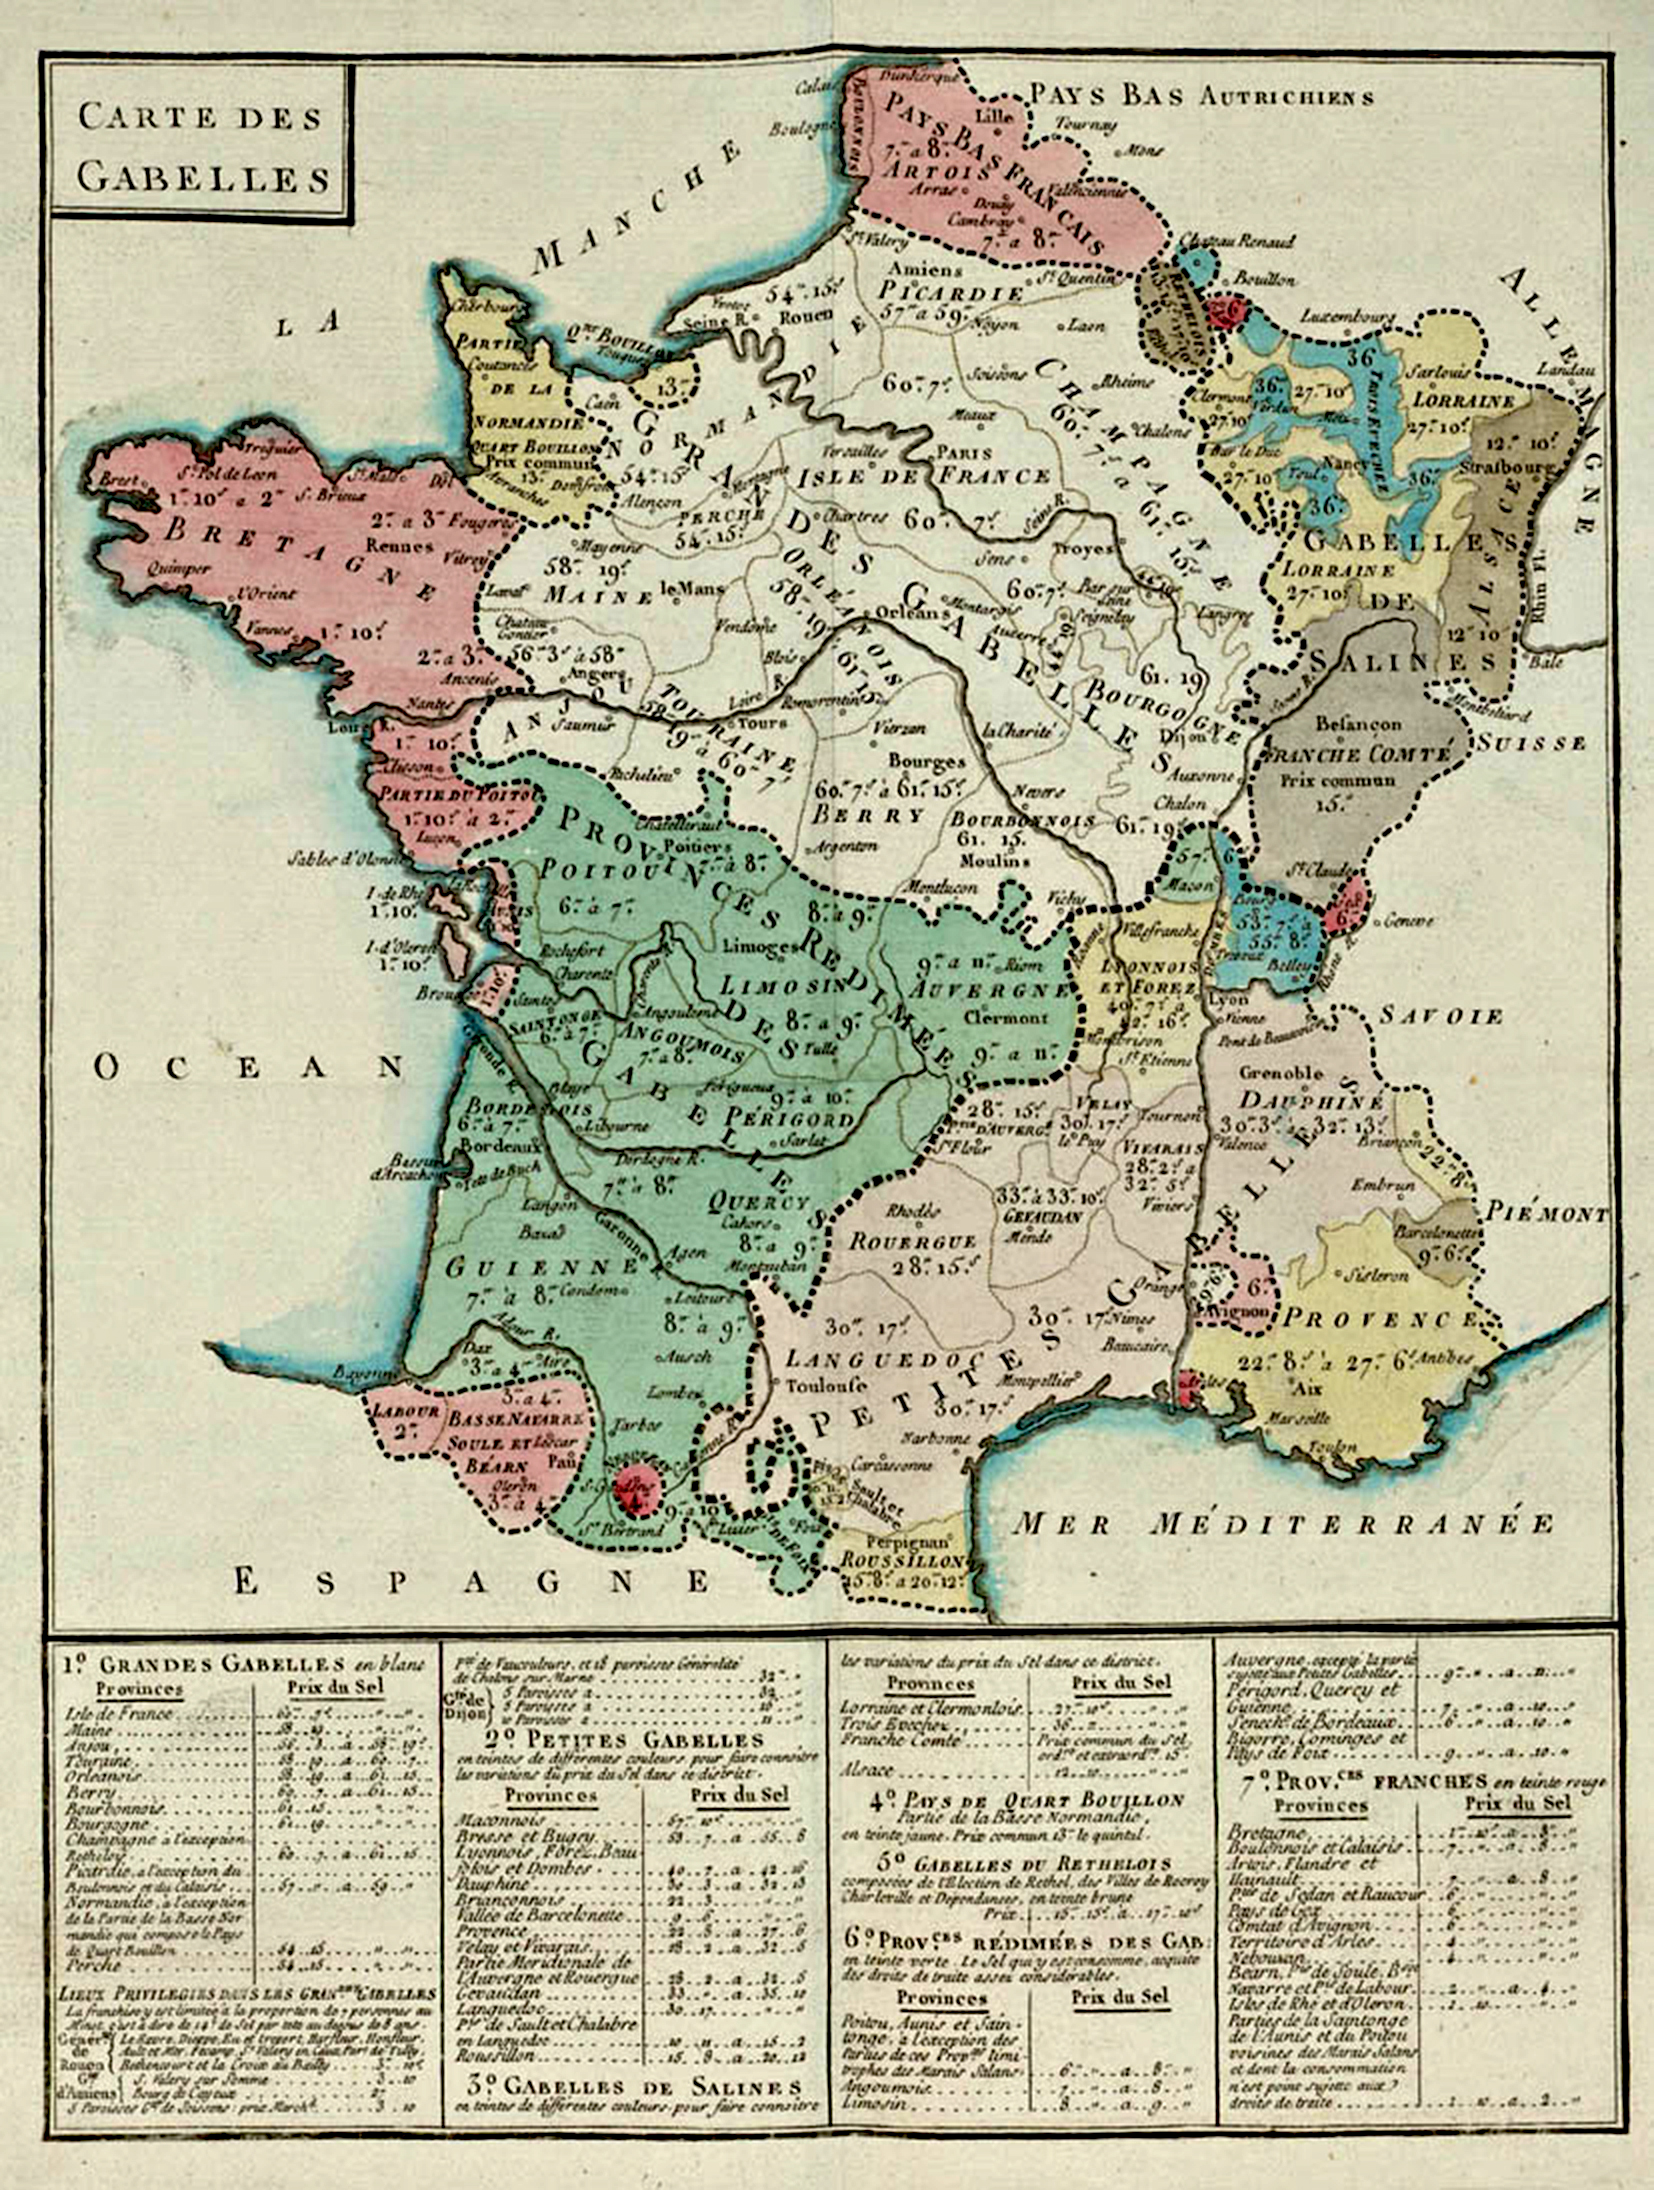 Map of the gabelle, the salt tax in France in 1781.